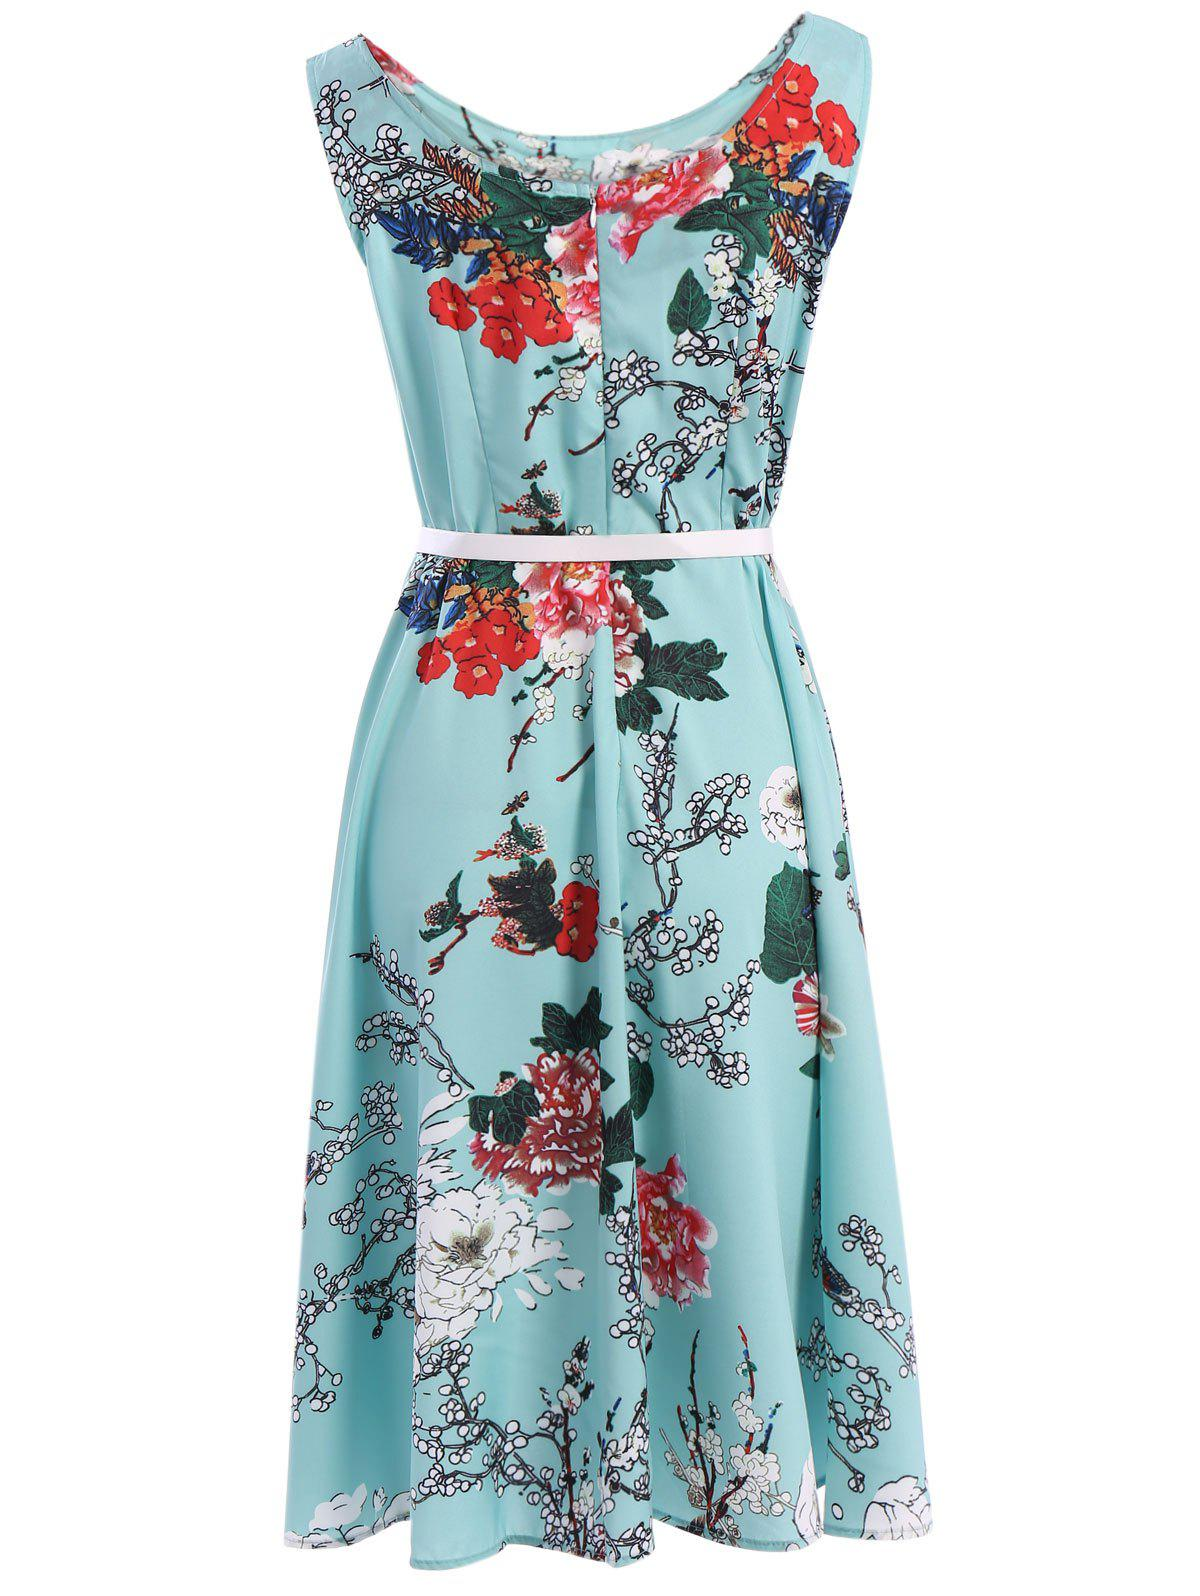 Vintage Women's Round Neck Sleeveless Floral Print Belted A-Line Dress - AZURE L